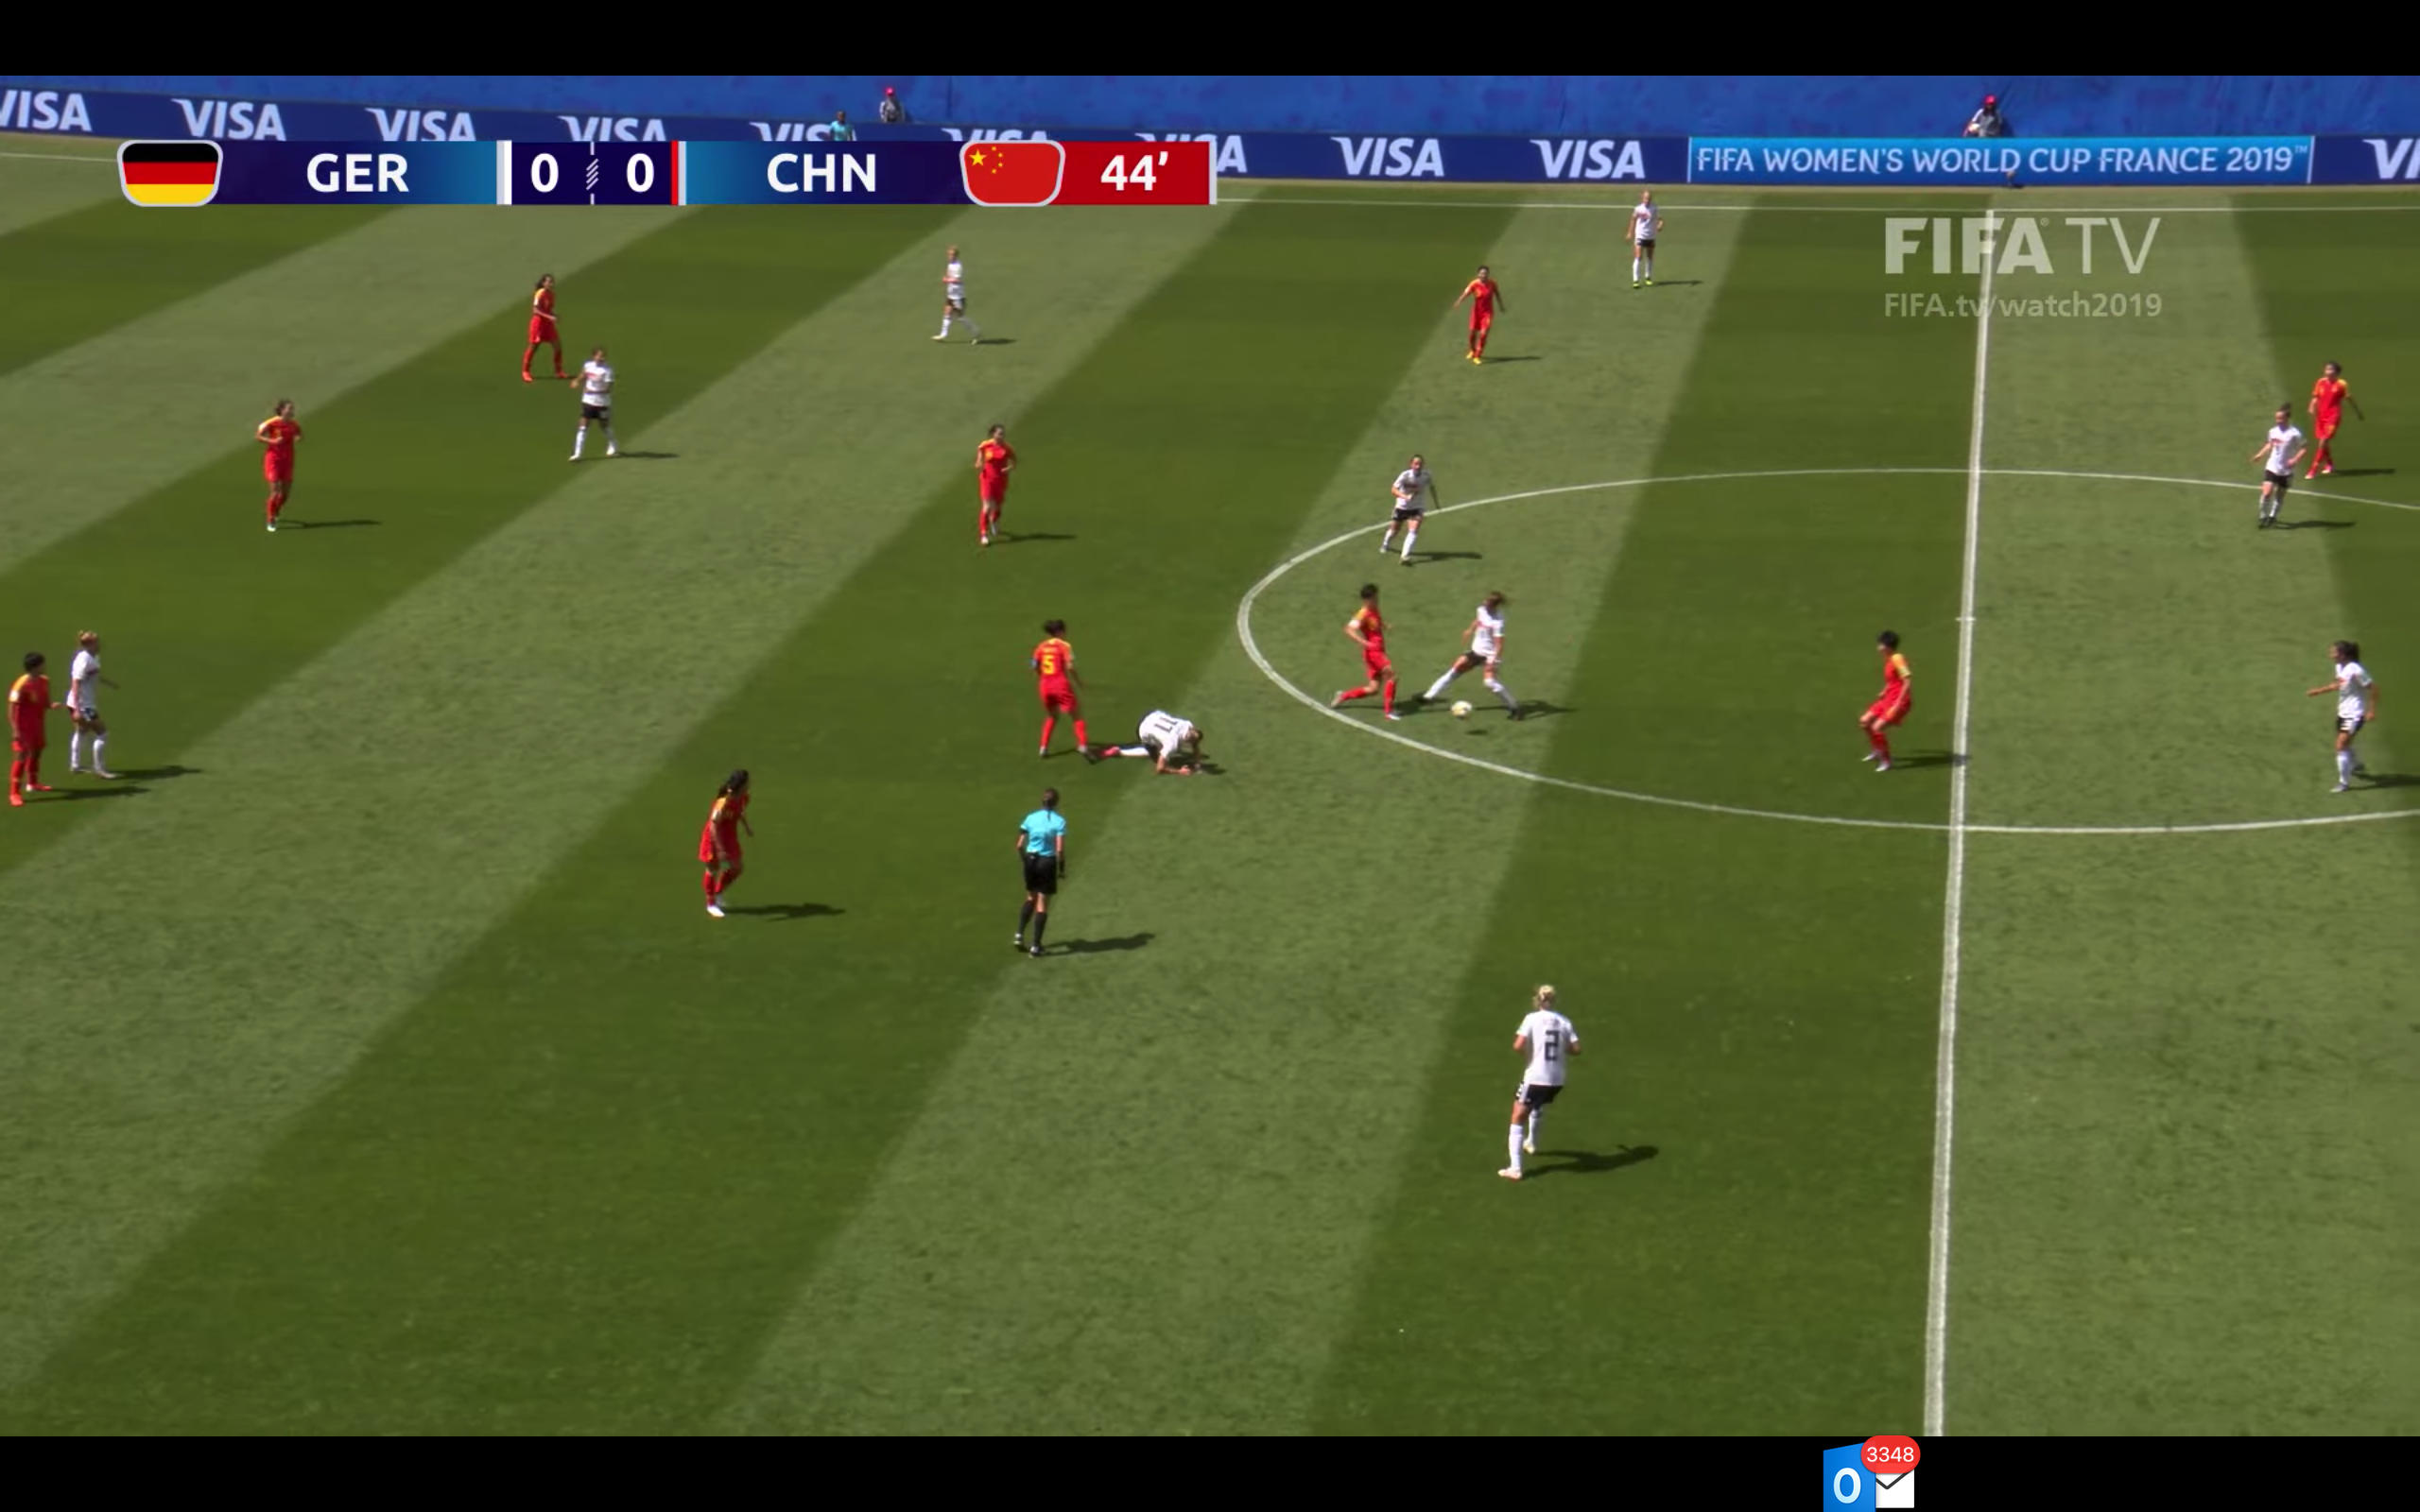 south-africa-china-fifa-womens-world-cup-tactical-analysis-analysis